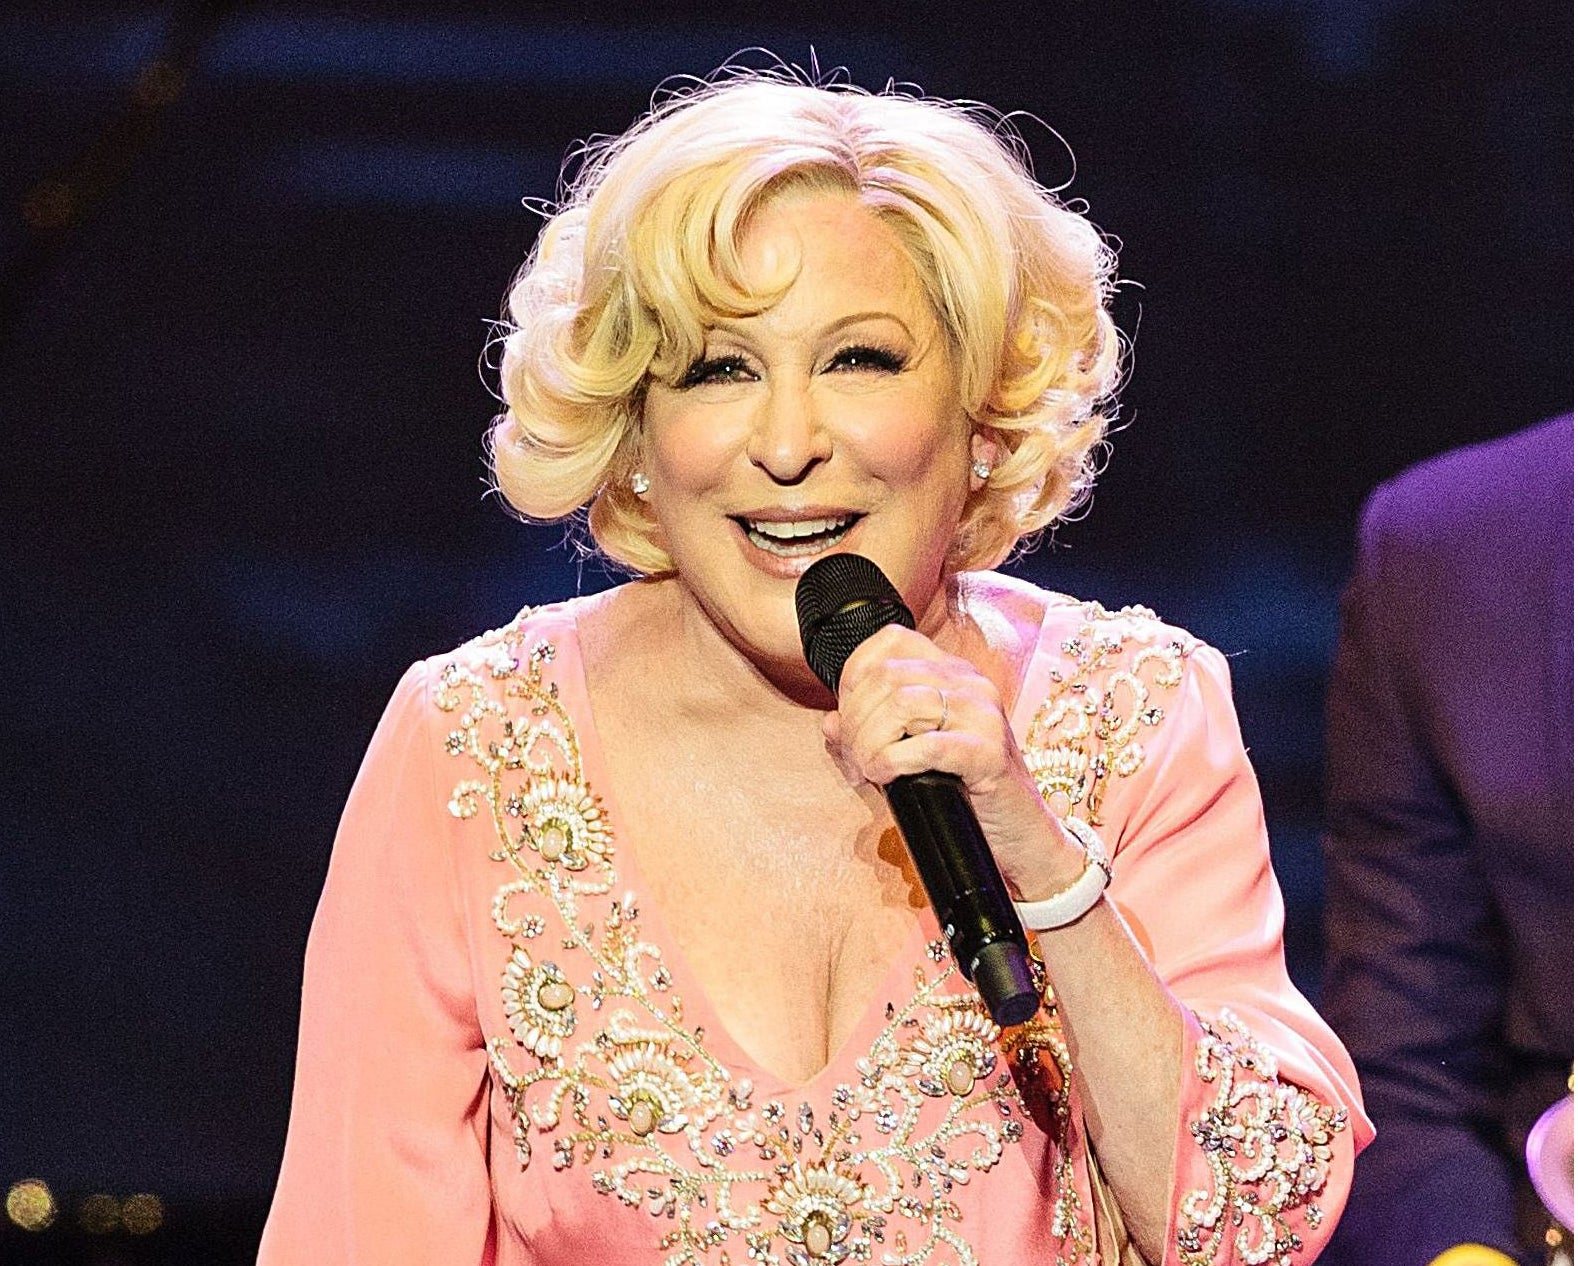 ... The Divine Miss M still has it | Reviews | Culture | The Independent